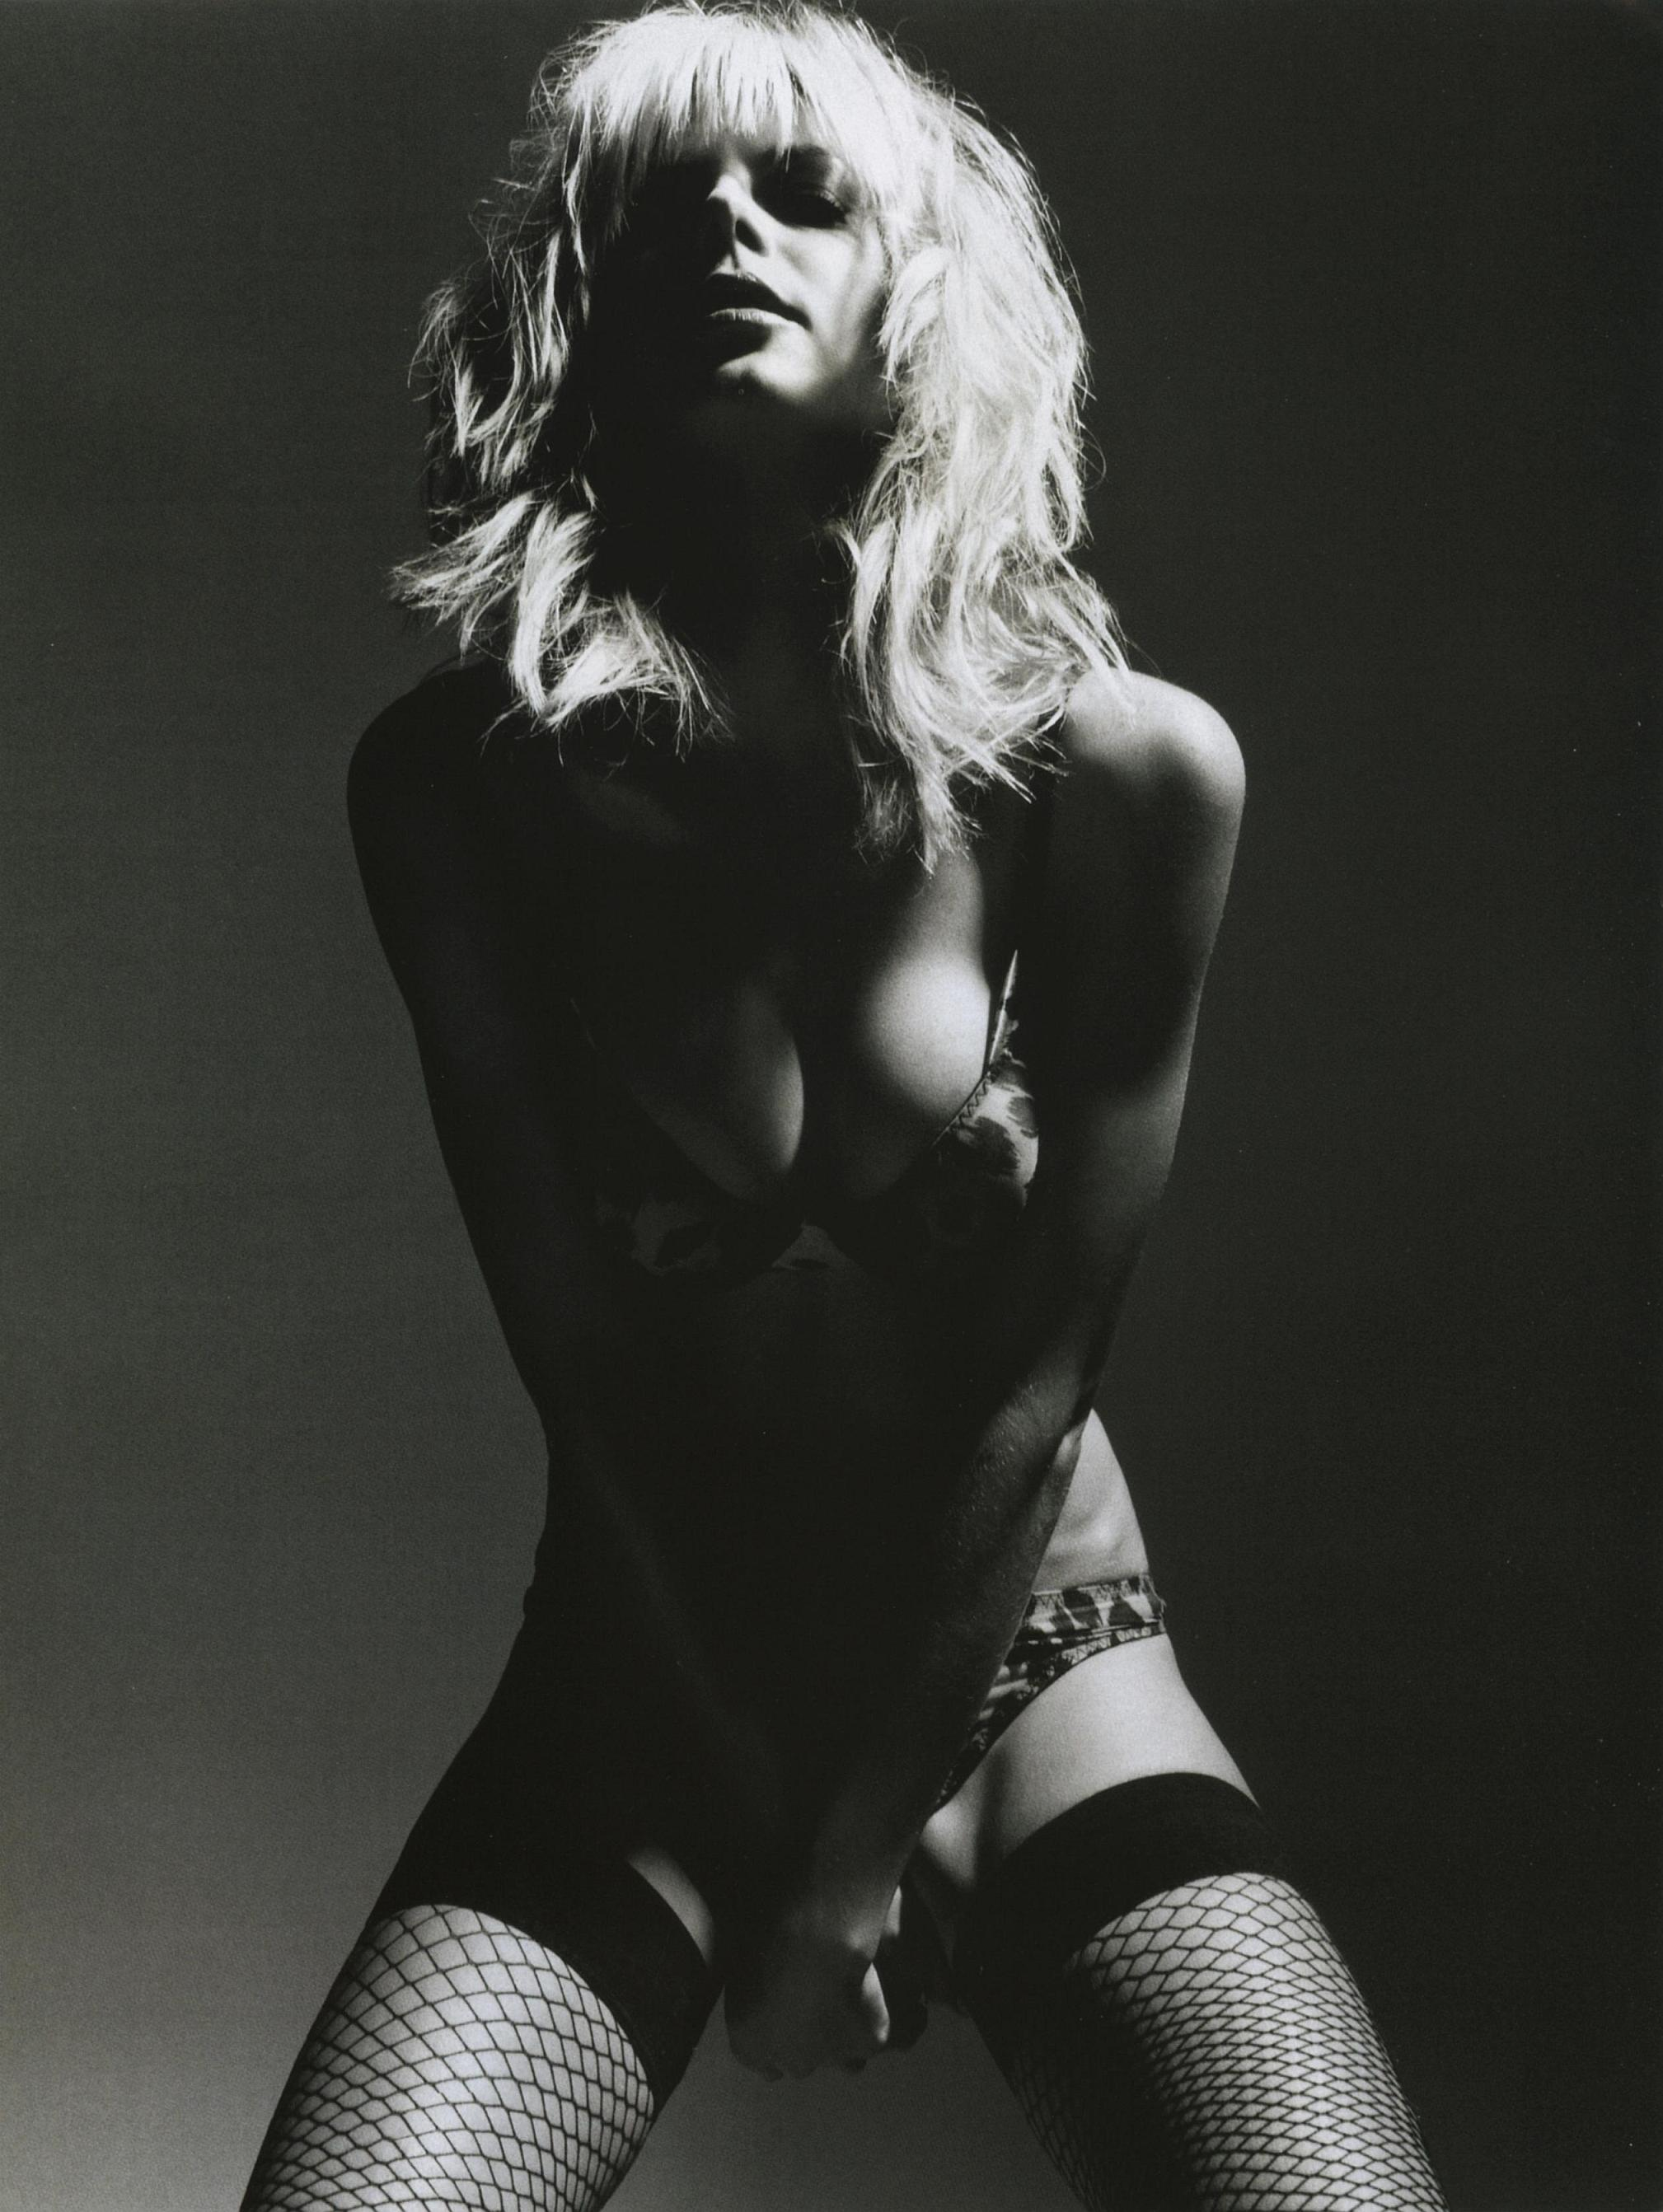 Heidi Klum Black & White By John Rankin Waddell